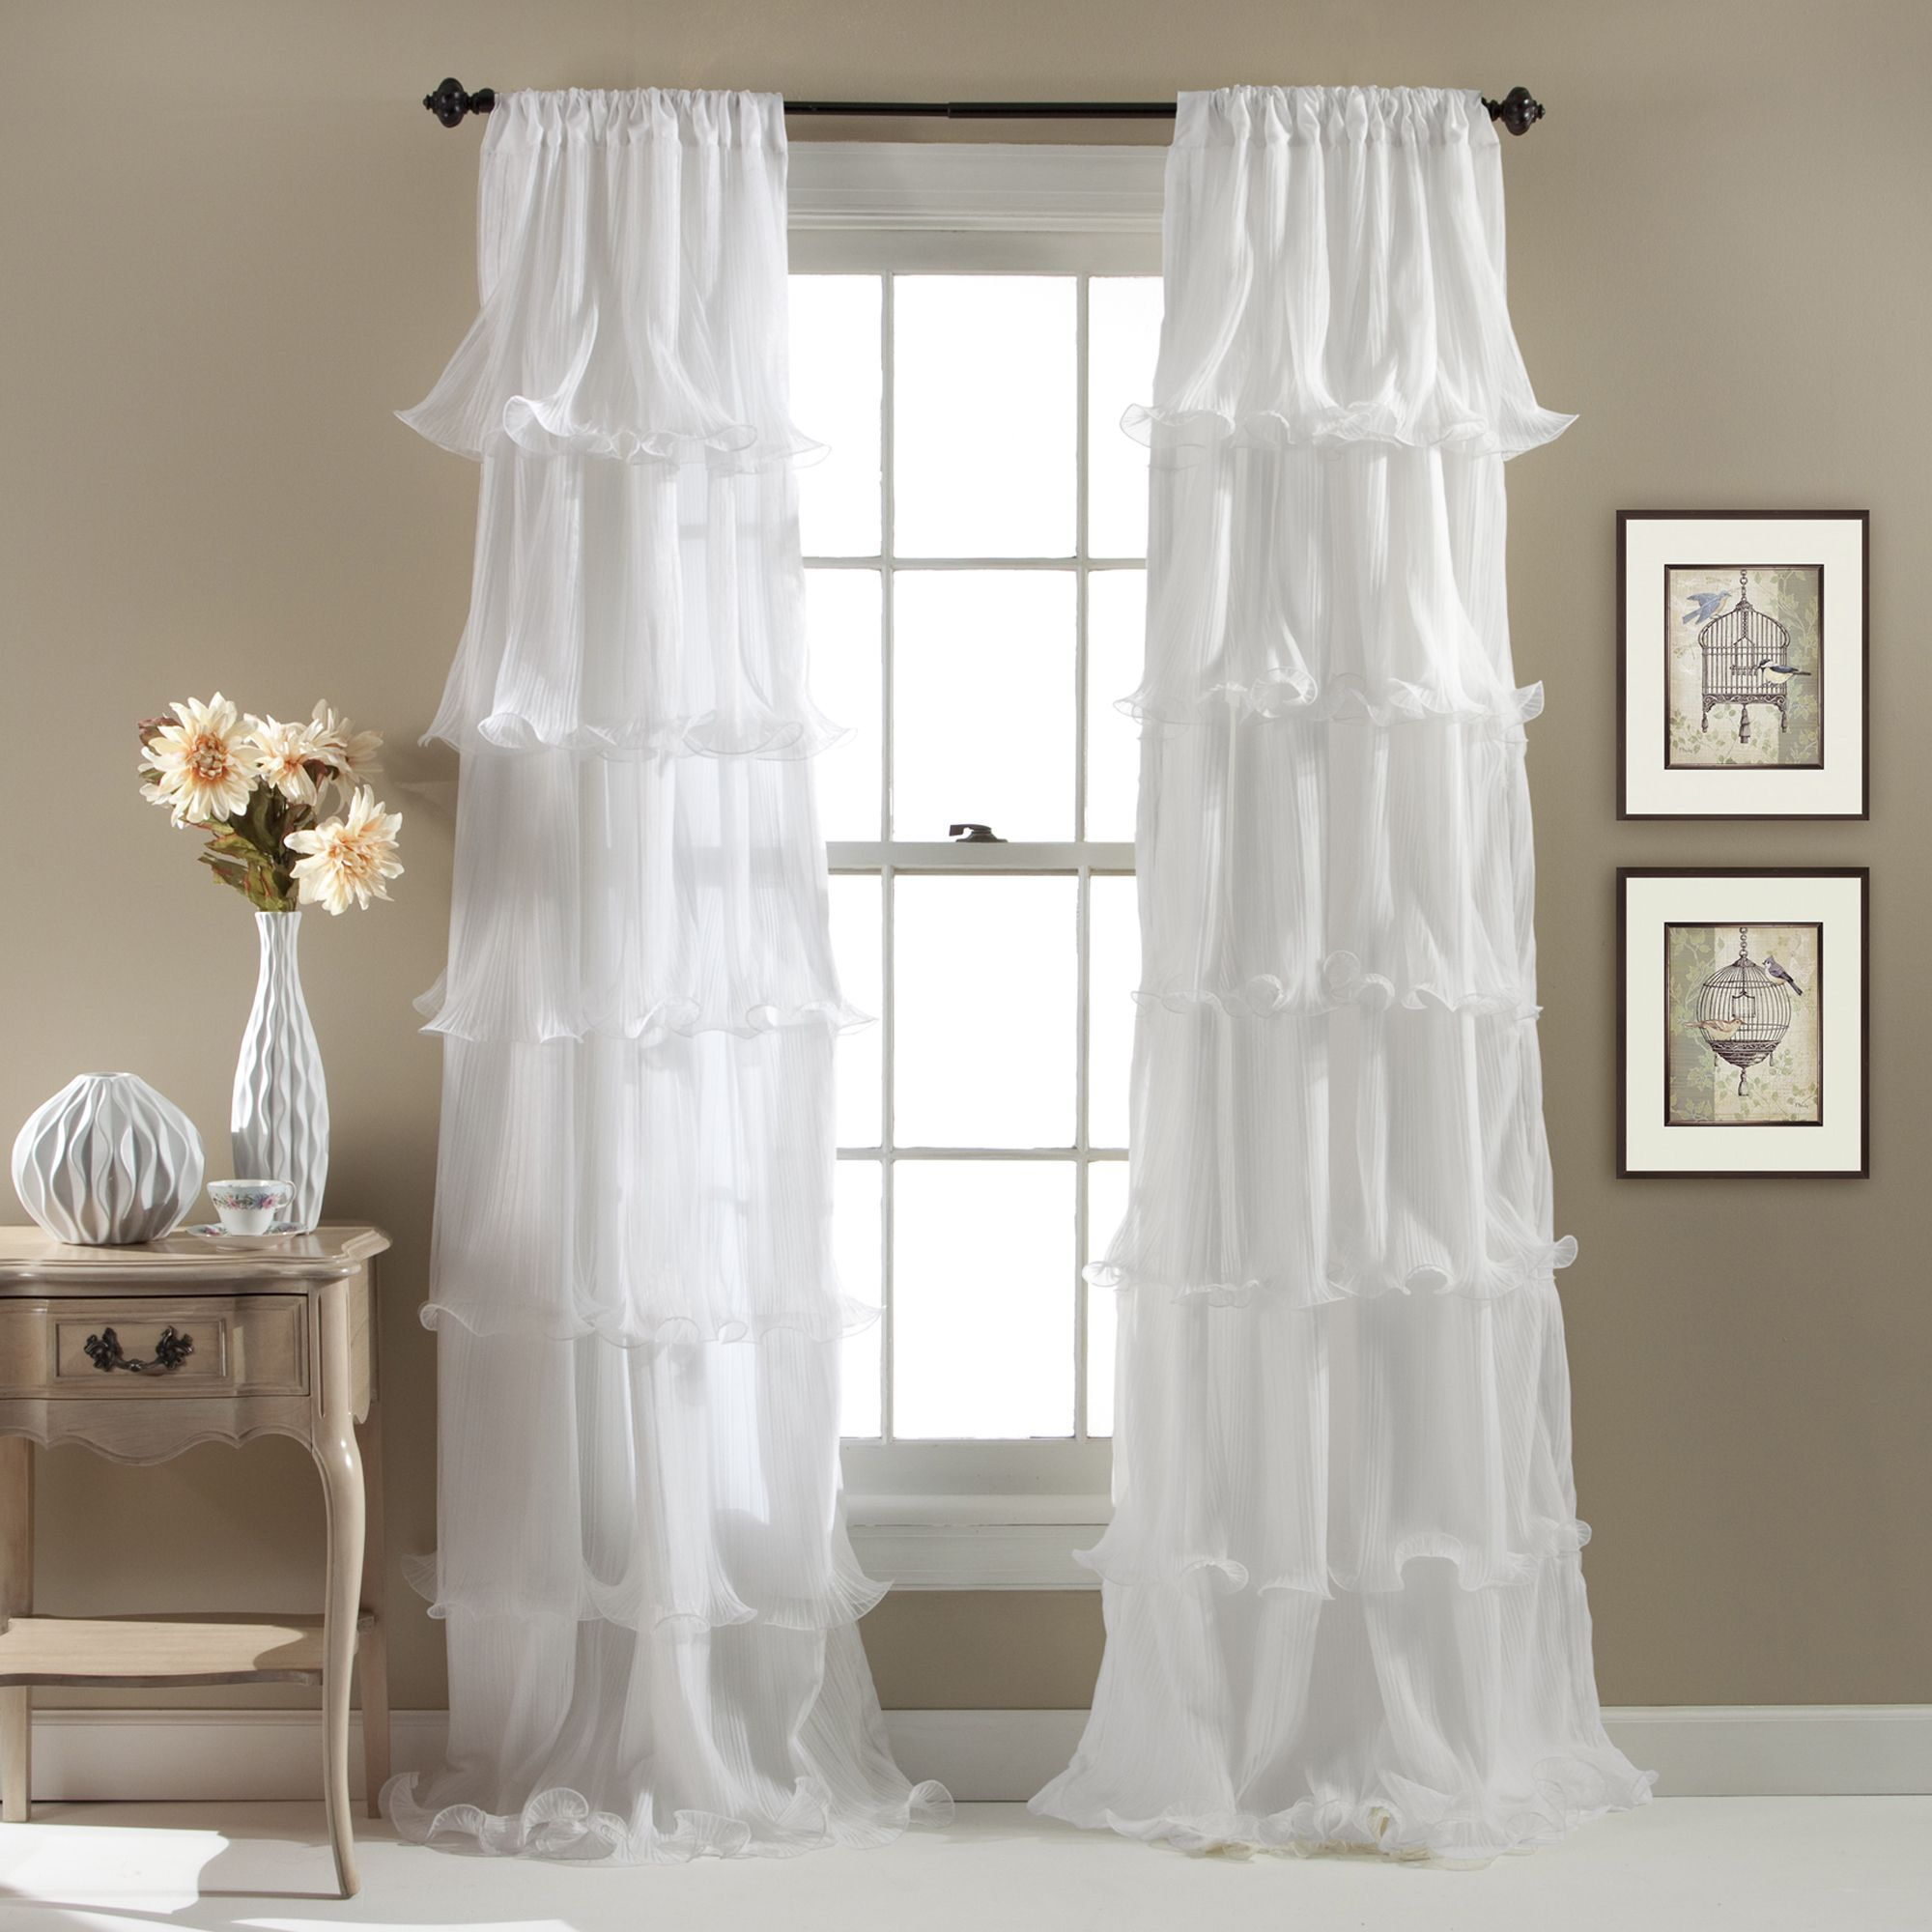 Lush Decor Nerina Ruffled Curtain Panel (White), Size 54 X